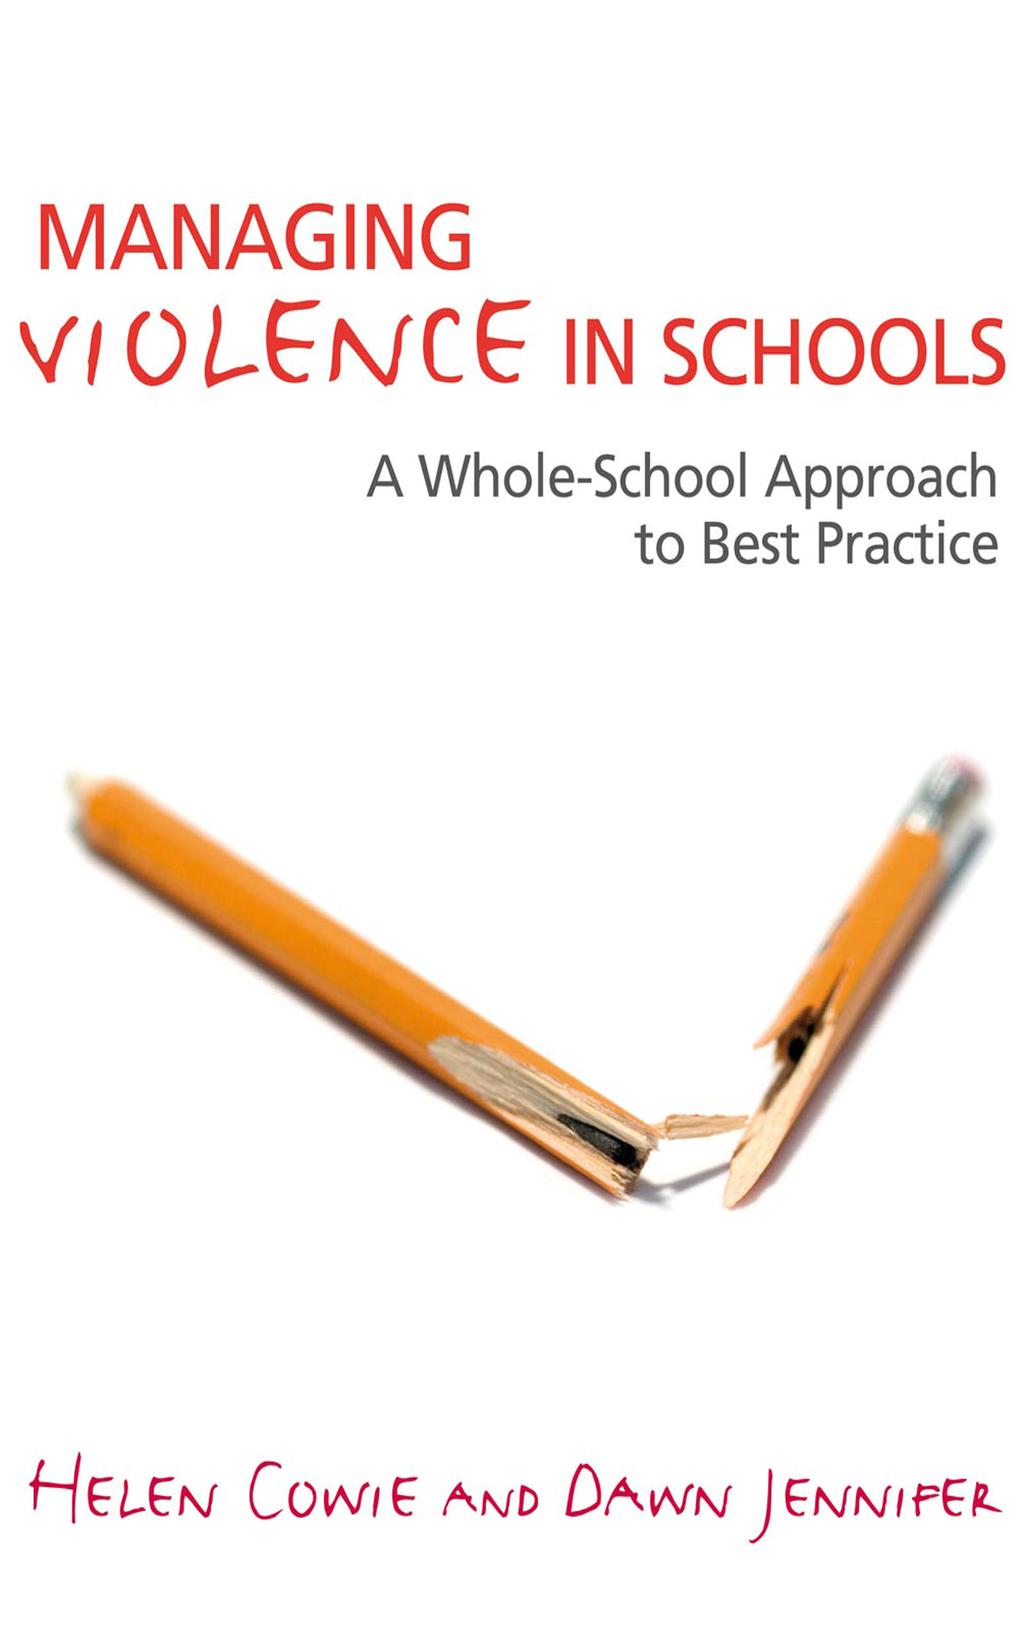 Managing Violence in Schools A Whole-School Approach to Best Practice